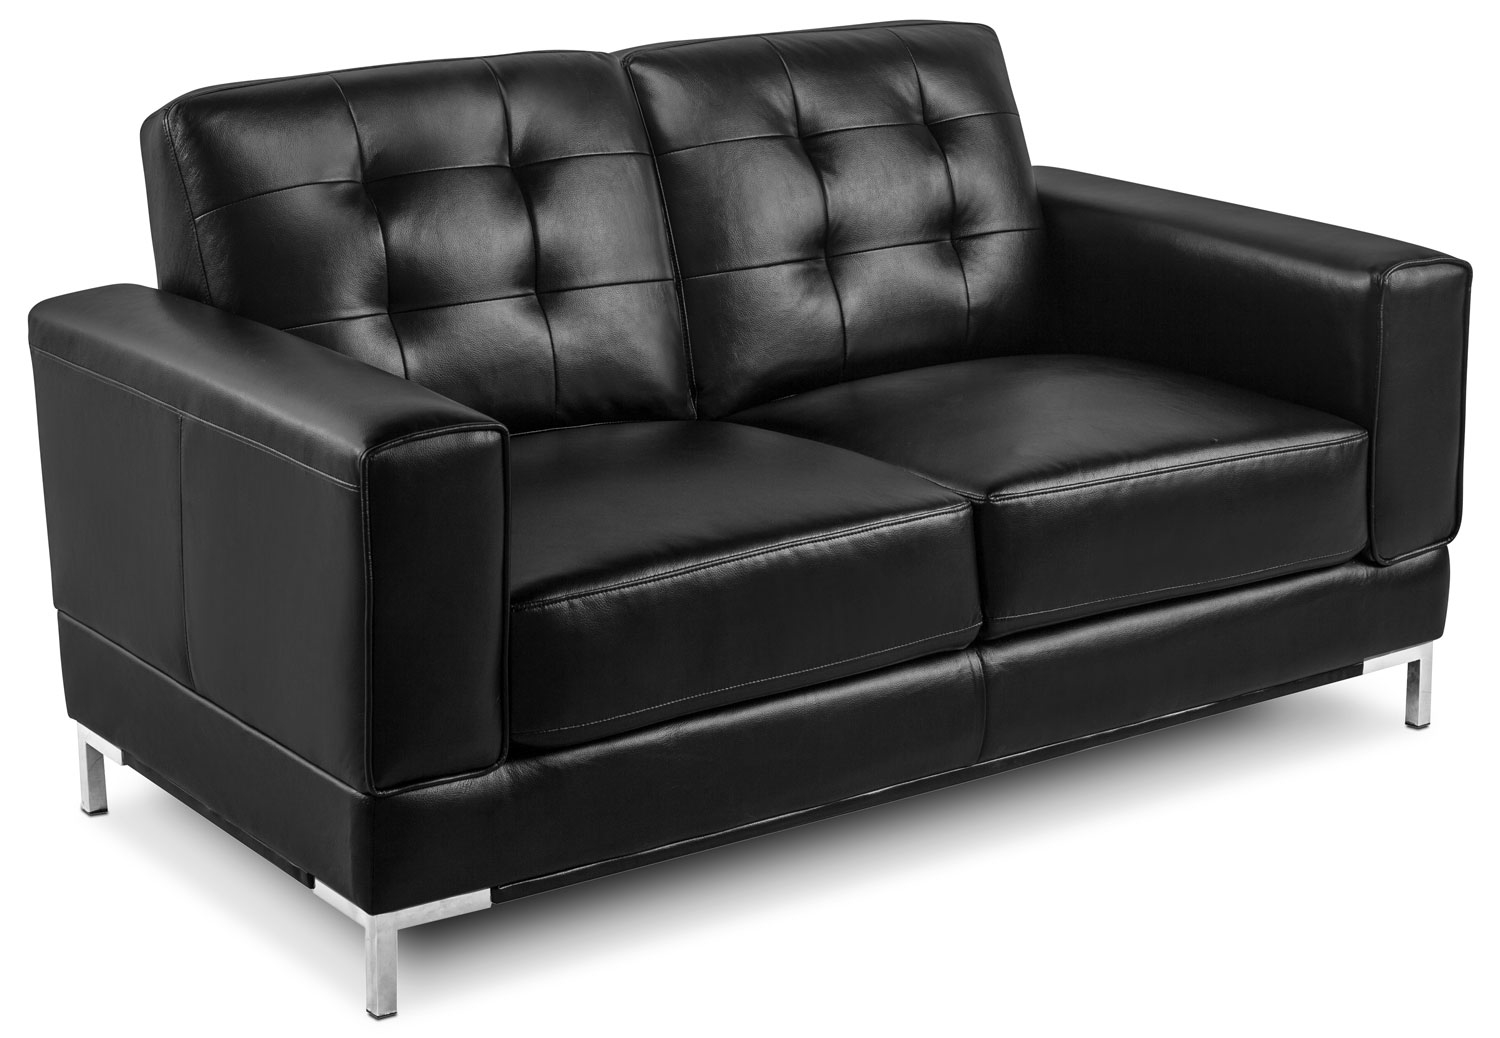 Myer Leather-Like Fabric Sofa And Loveseat – Black